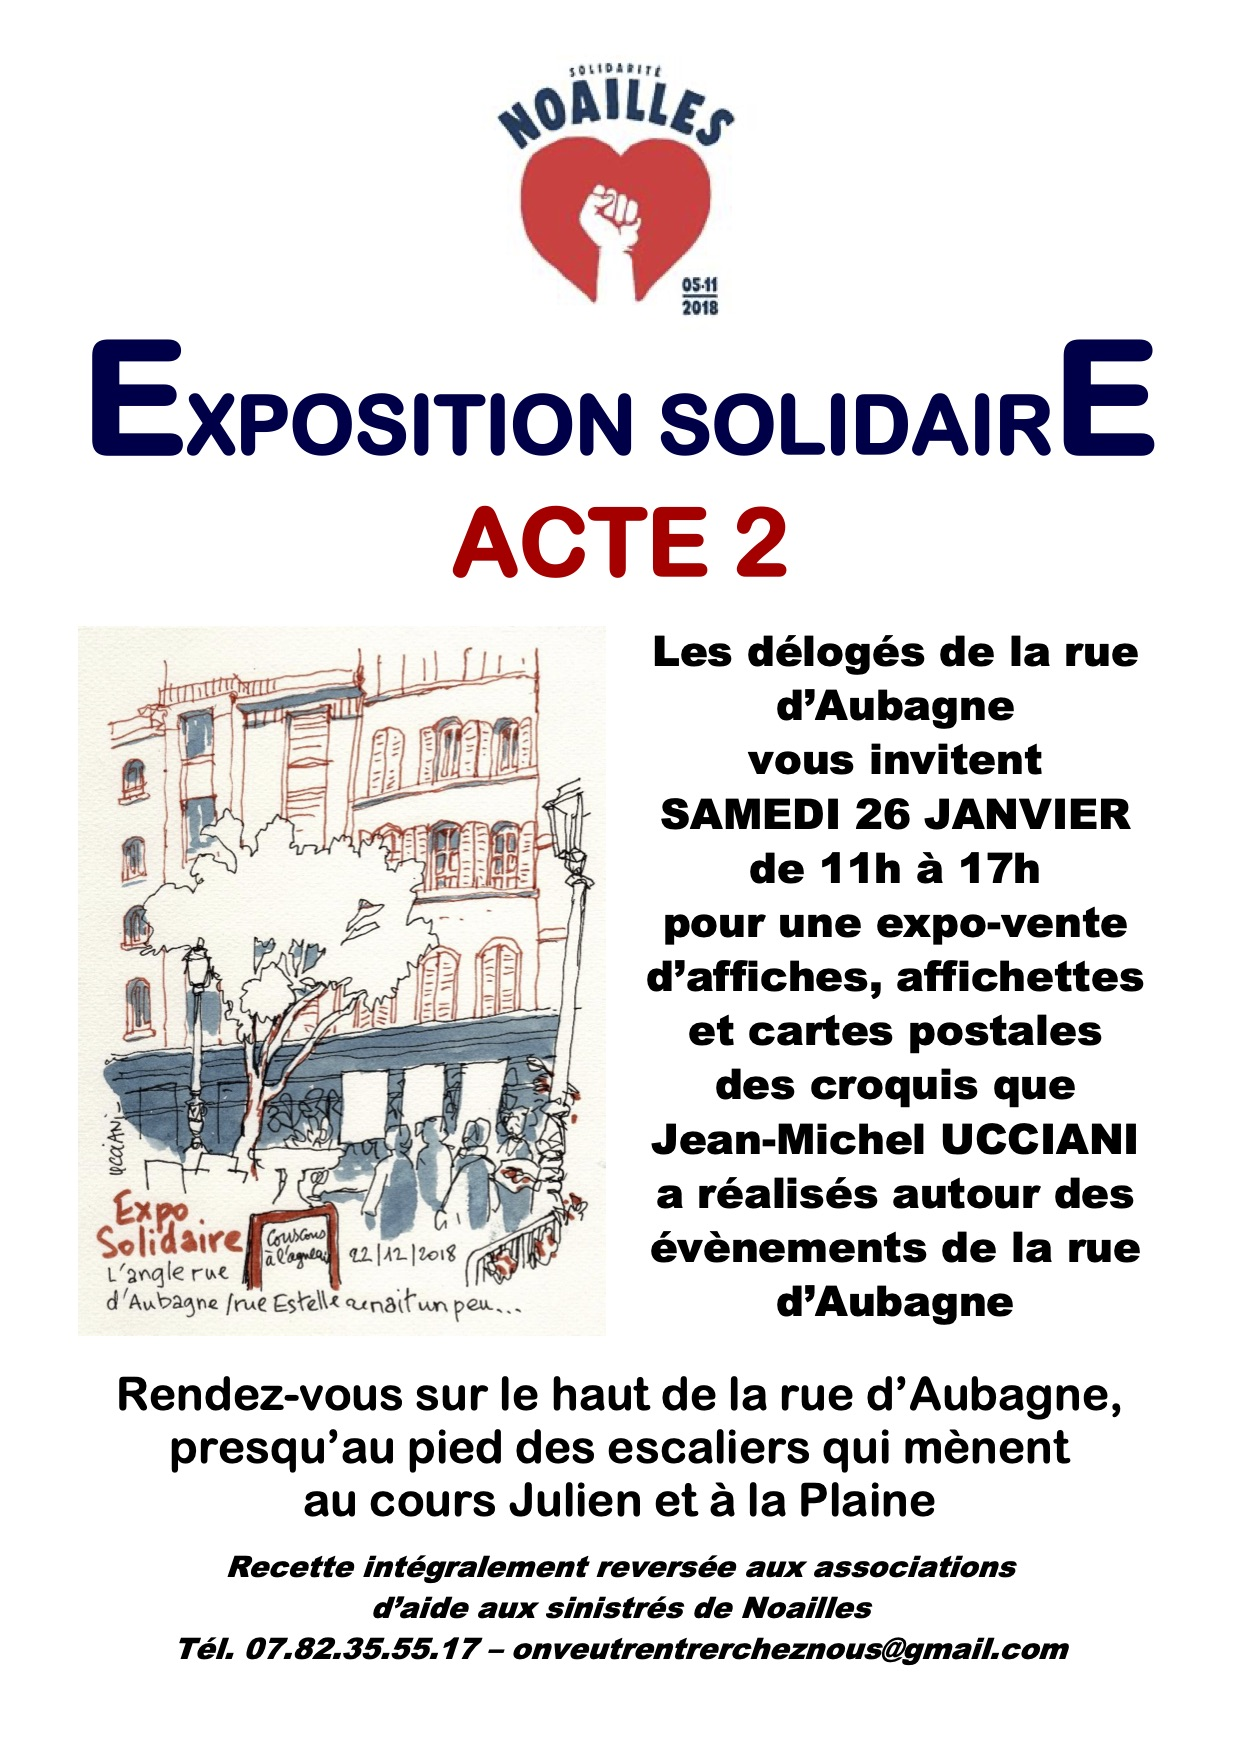 EXPO SOLIDAIRE